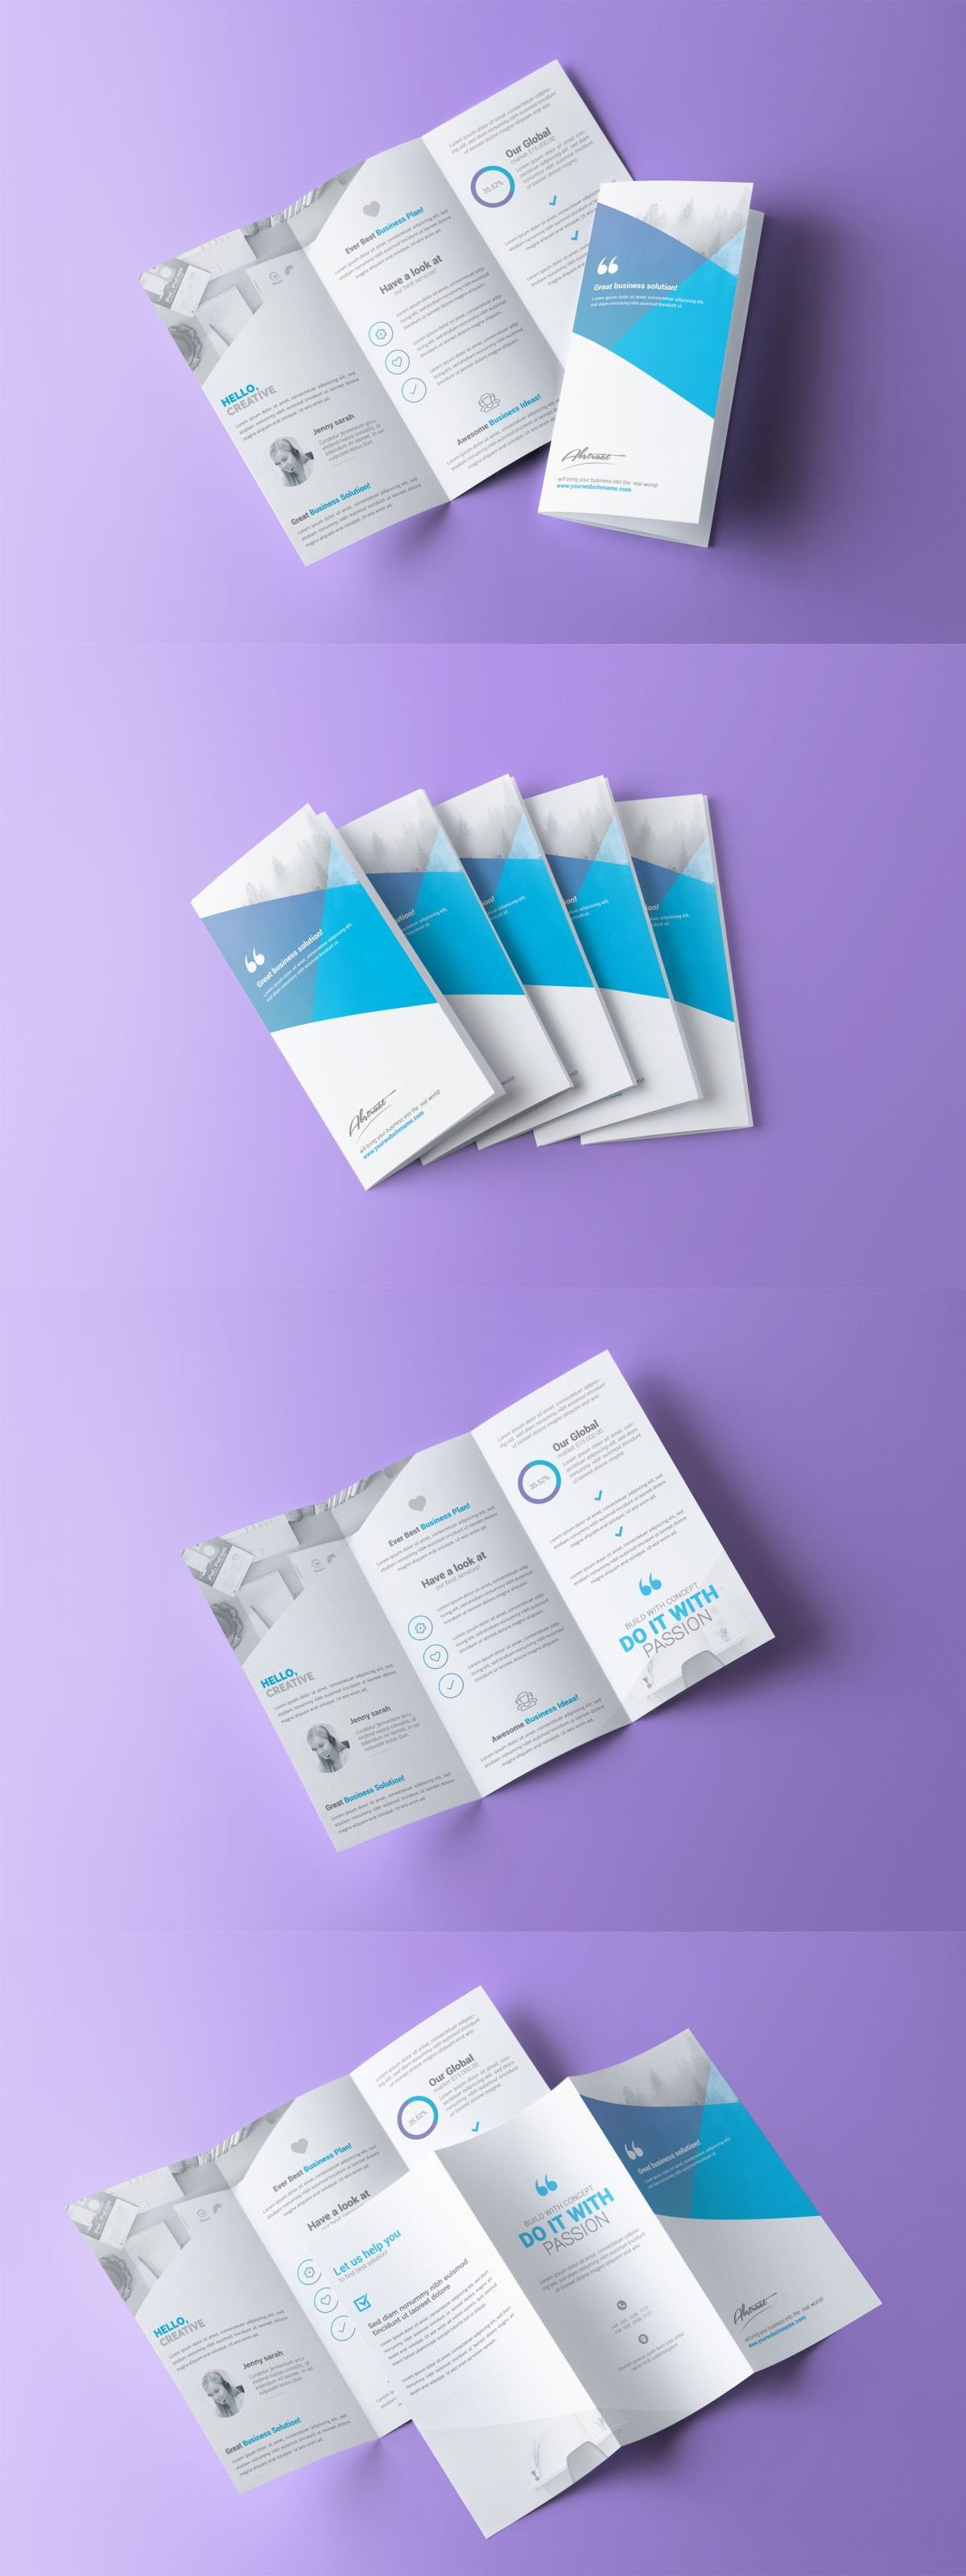 Multipurpose TriFold Brochure Template Psd  Brochure Templates